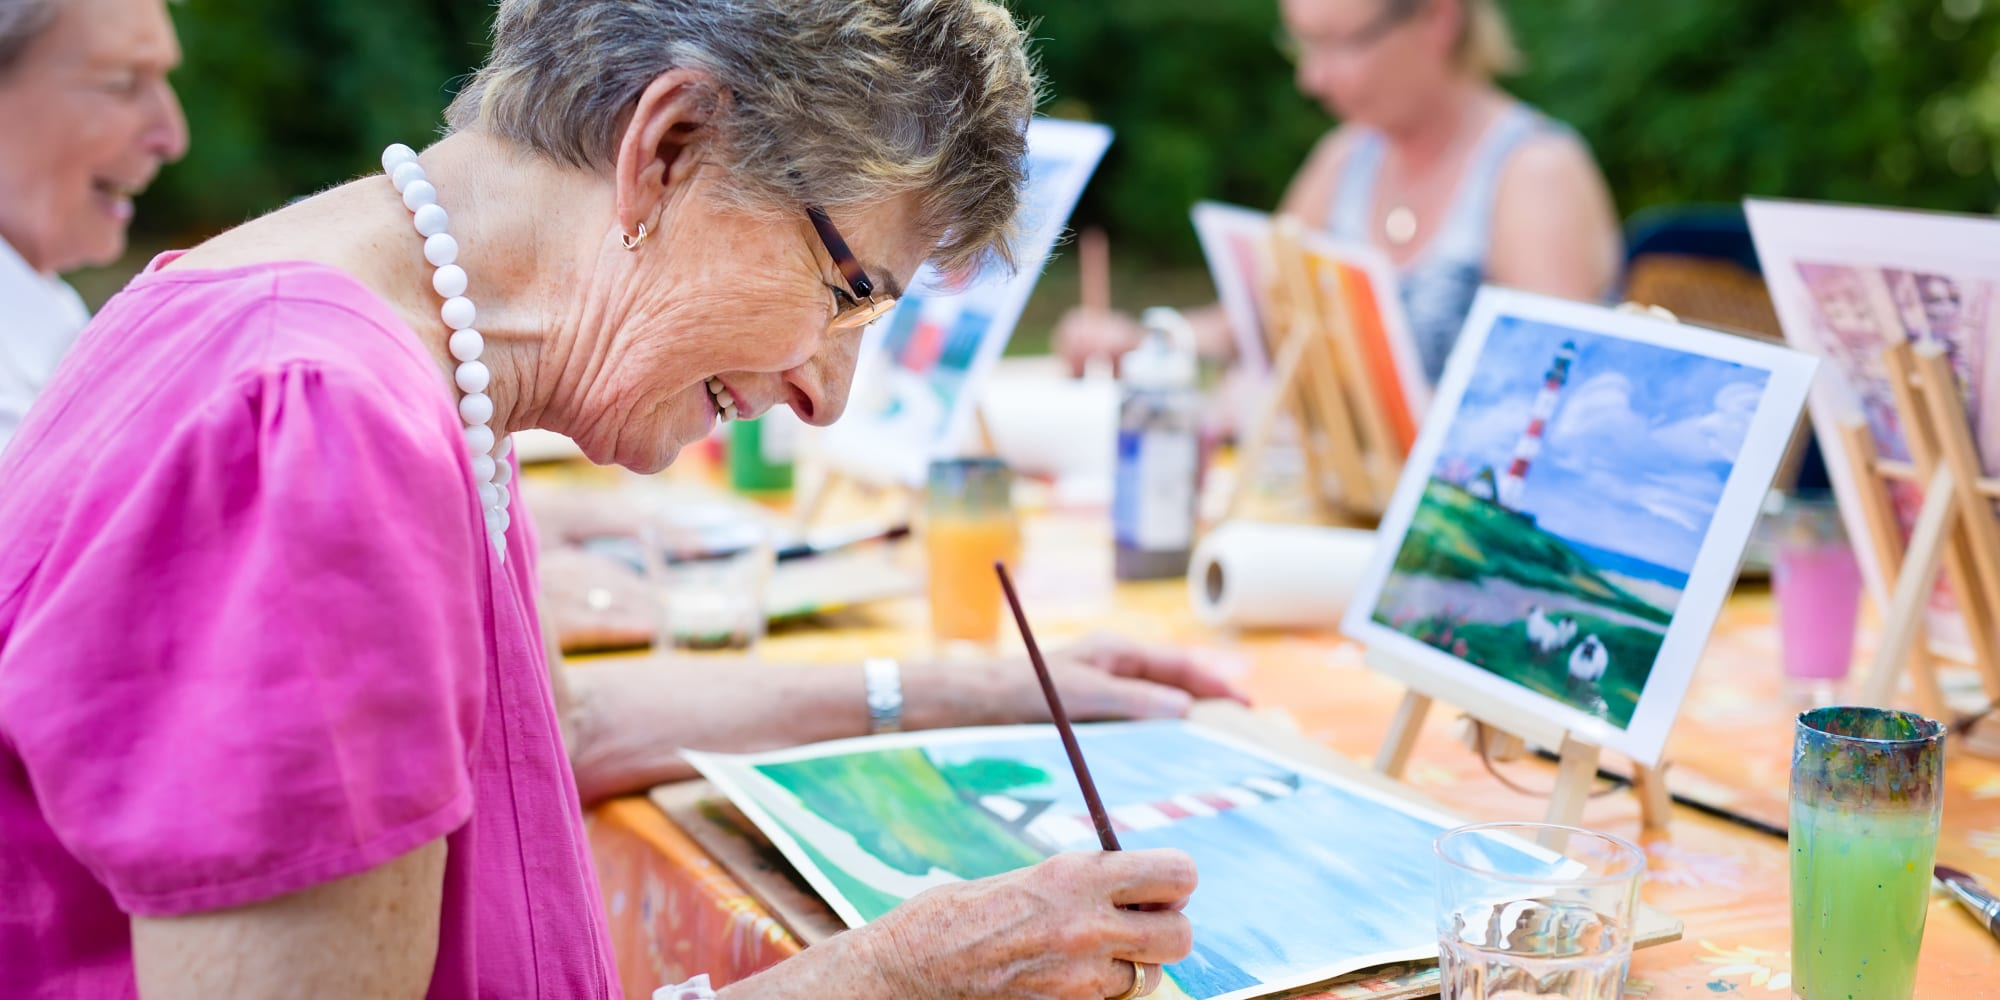 Resident working on a painting at Prestonwood Court in Plano, Texas